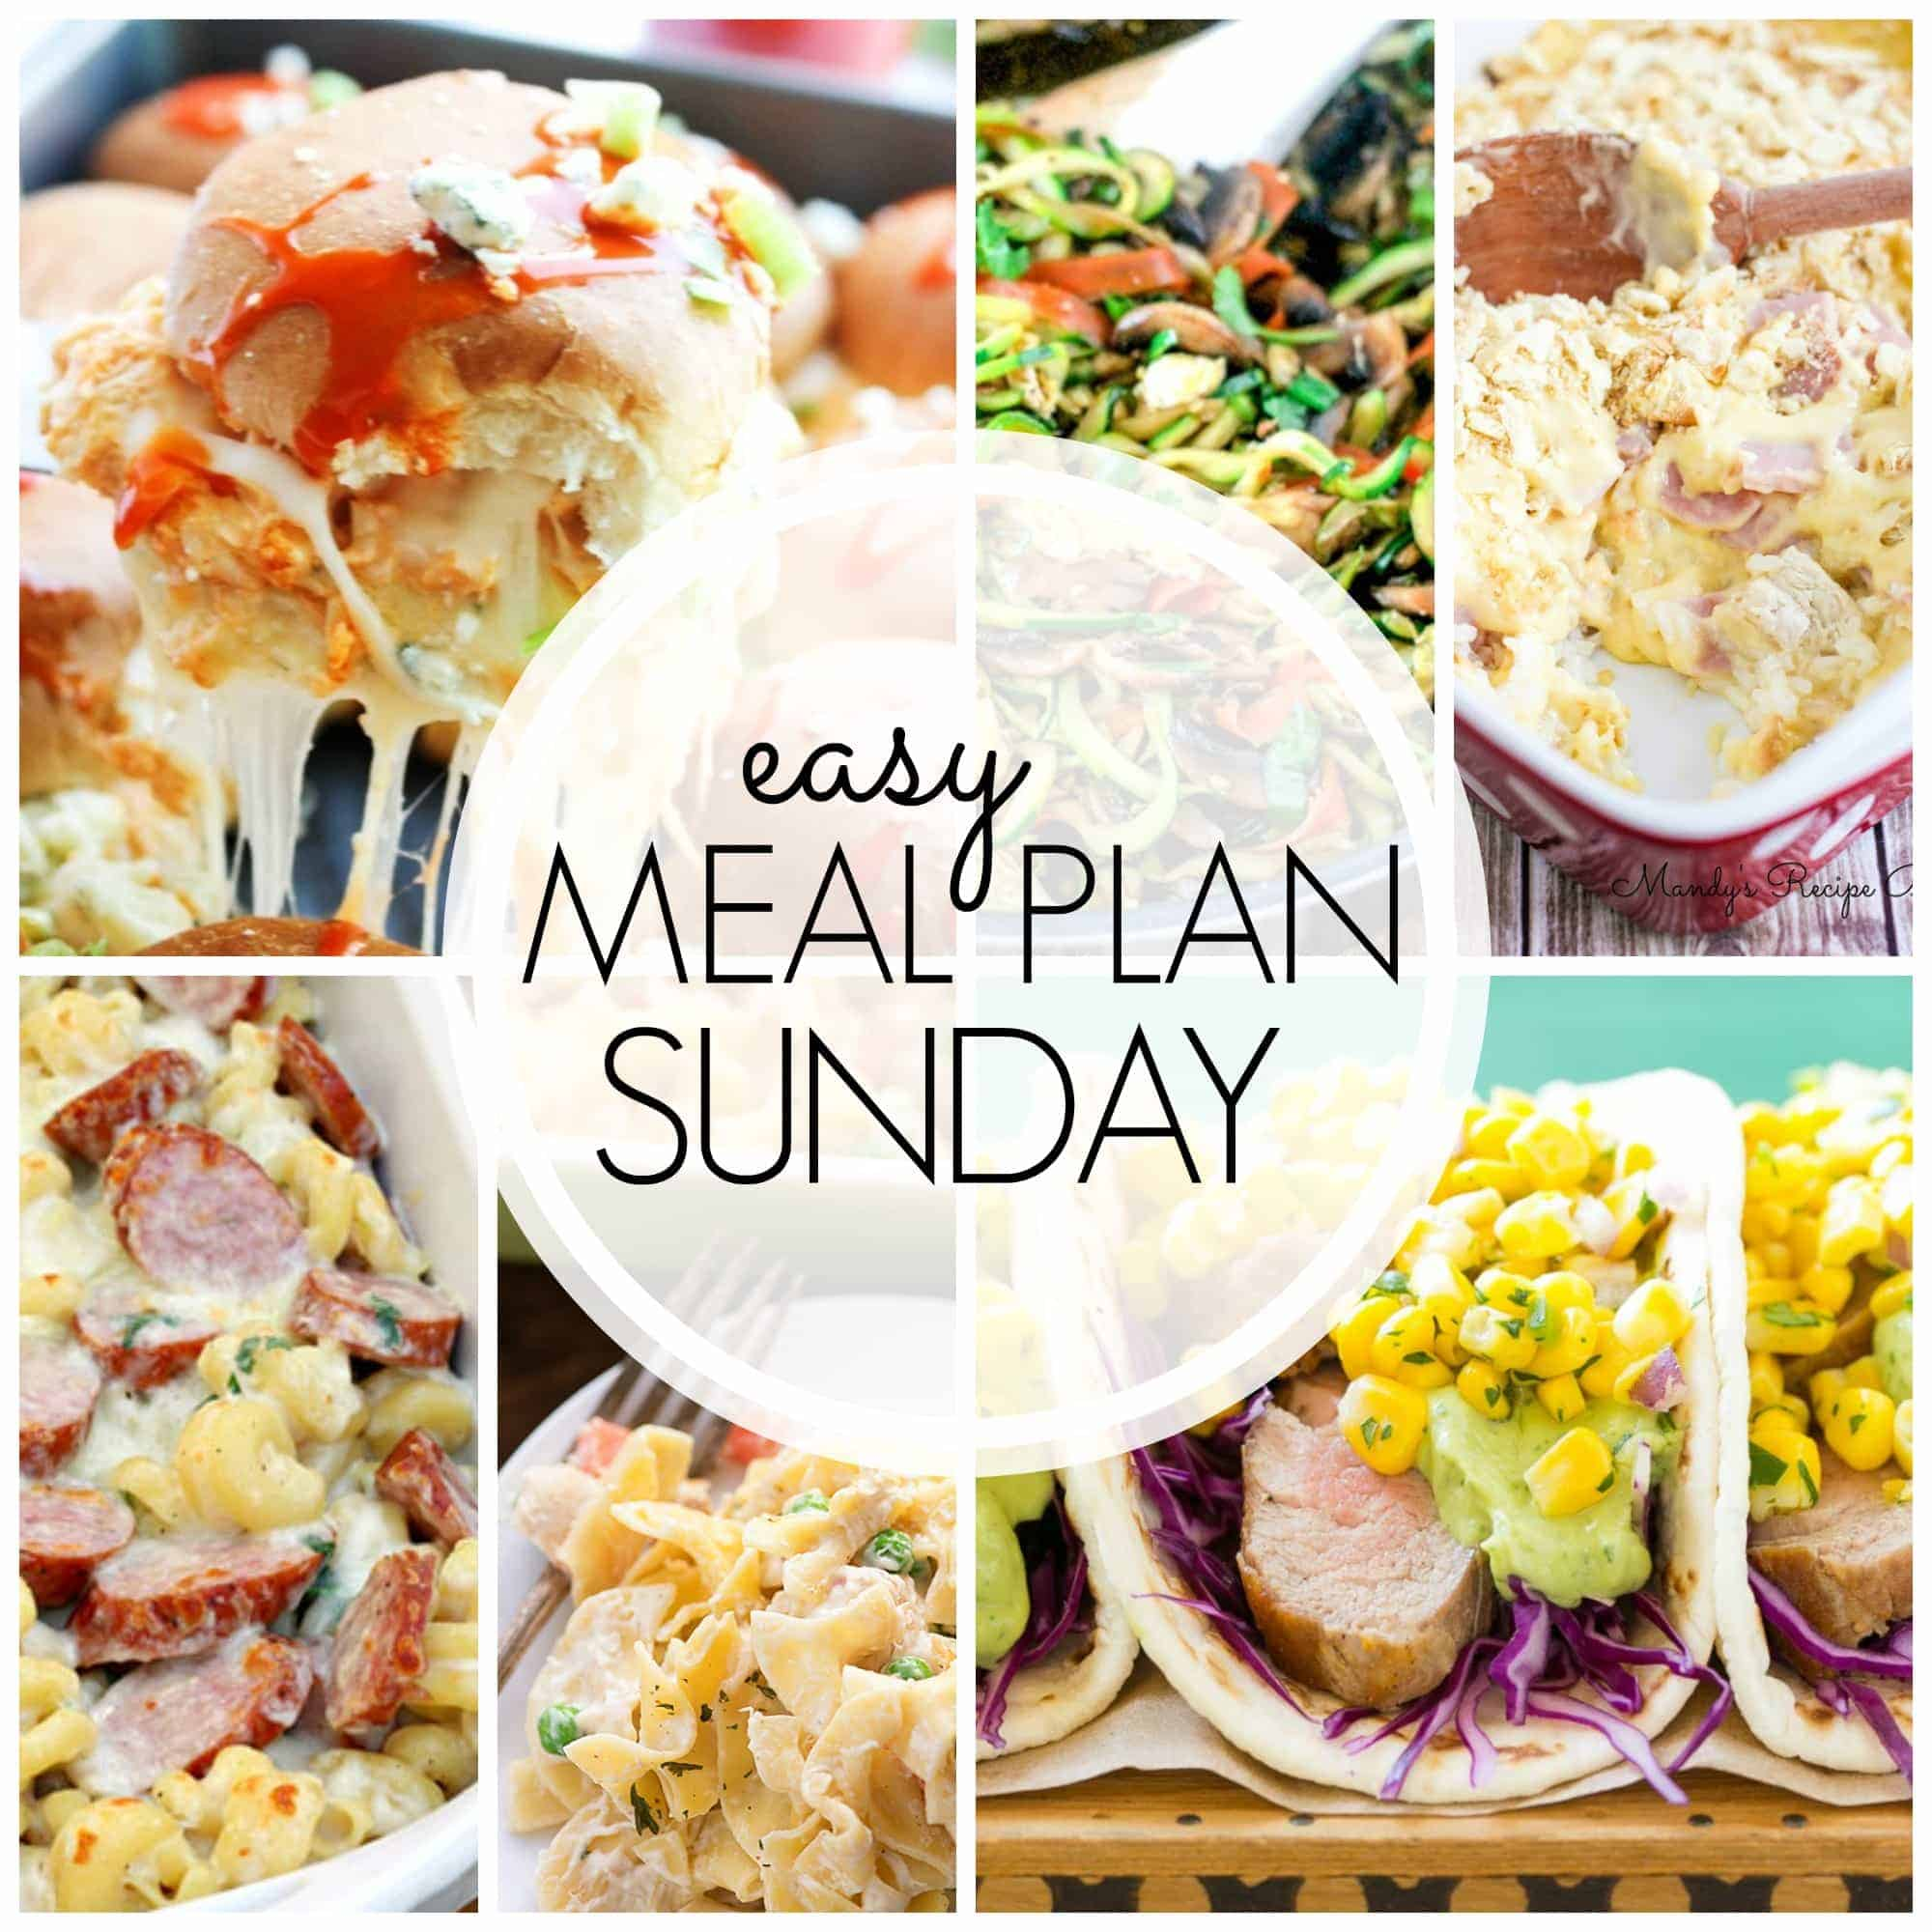 With Easy Meal Plan Sunday {Week 56}, these six dinners, two desserts and a breakfast recipe will help you remove the guesswork from this week's meal planning. Enjoy!